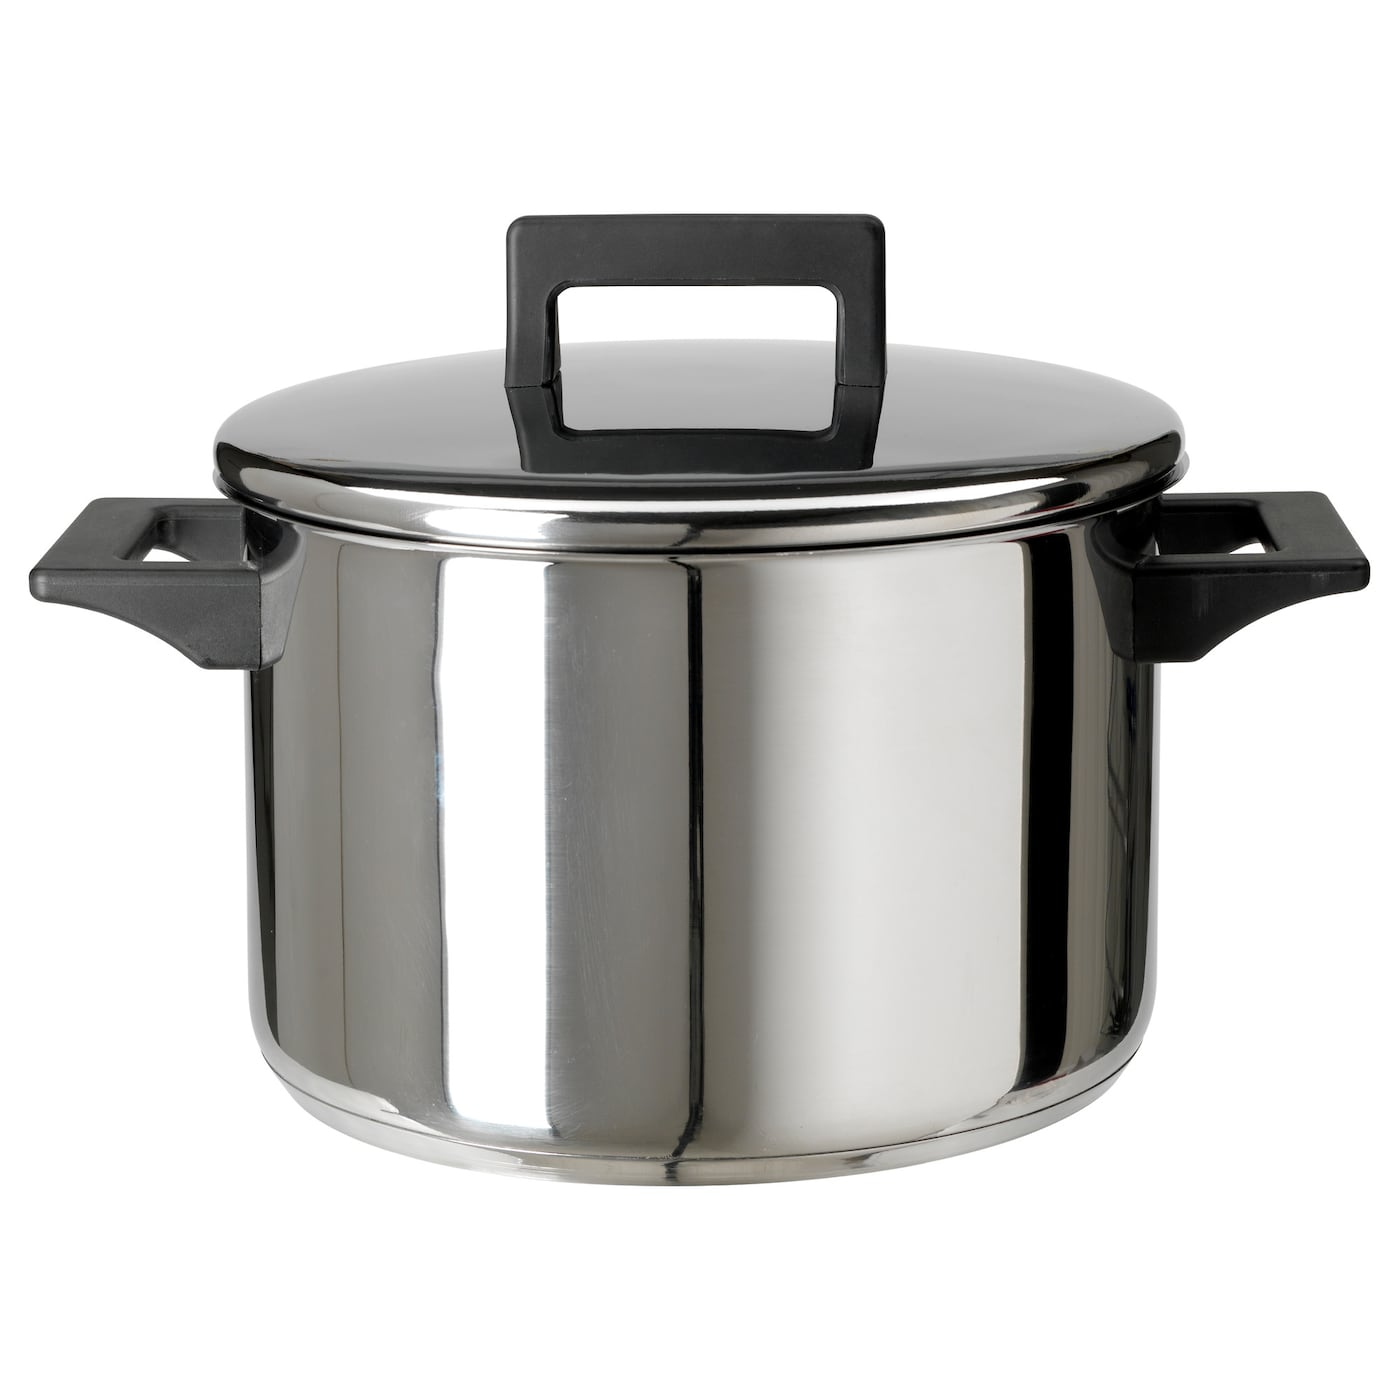 IKEA SNITSIG pot with lid Works well on all types of hobs, including induction hob.